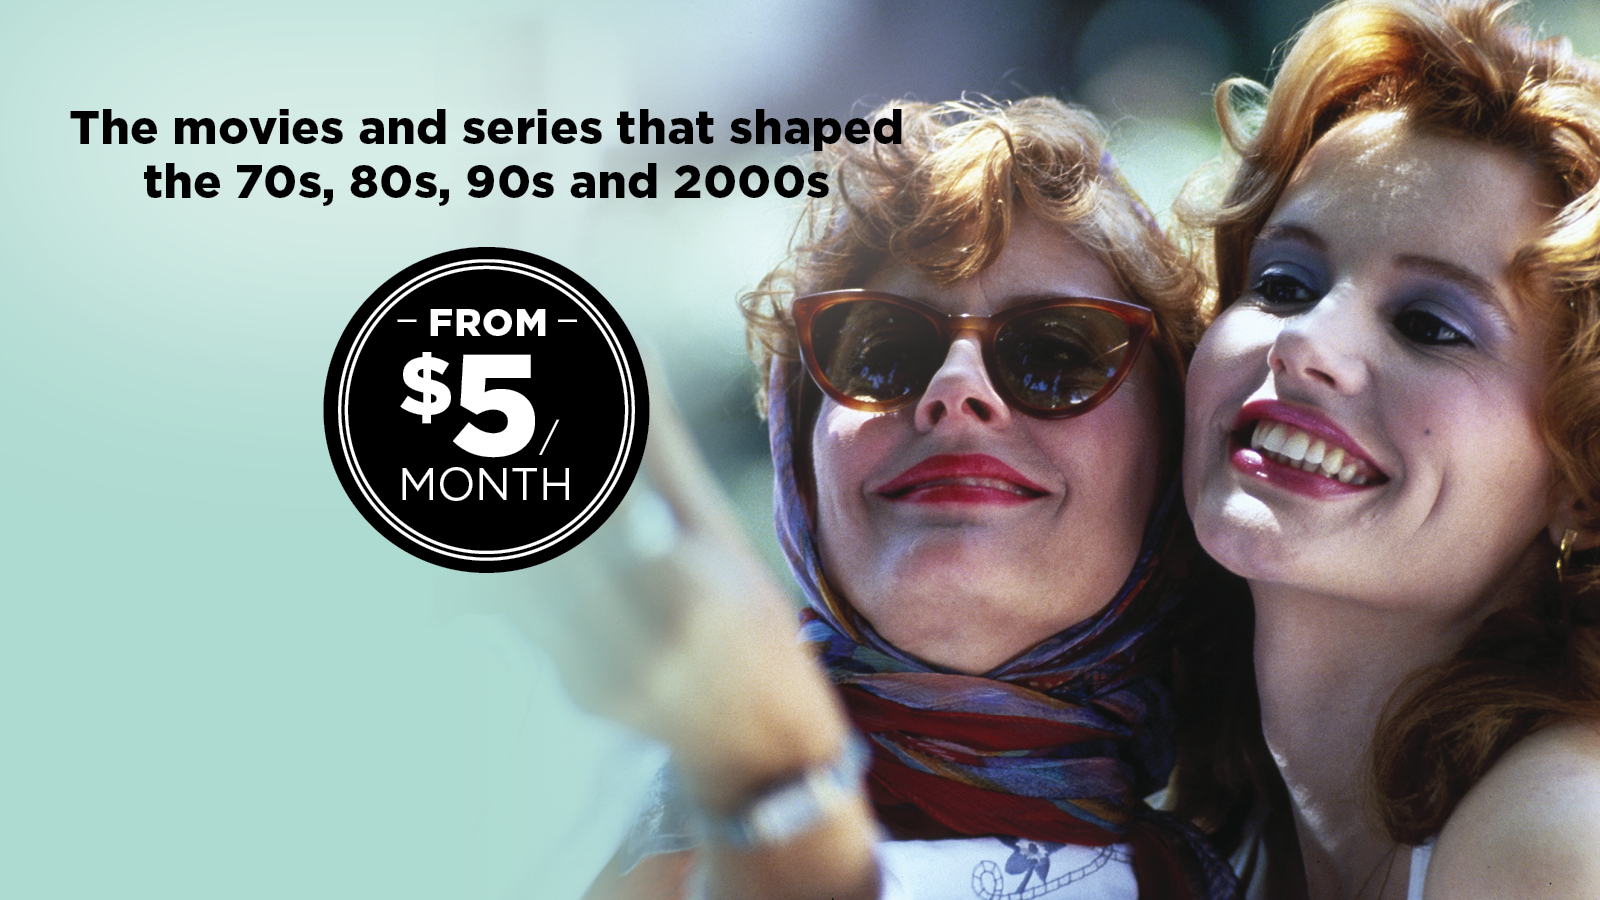 The movies and series that shaped the 70s, 80s, 90s and 2000s. From $5/month